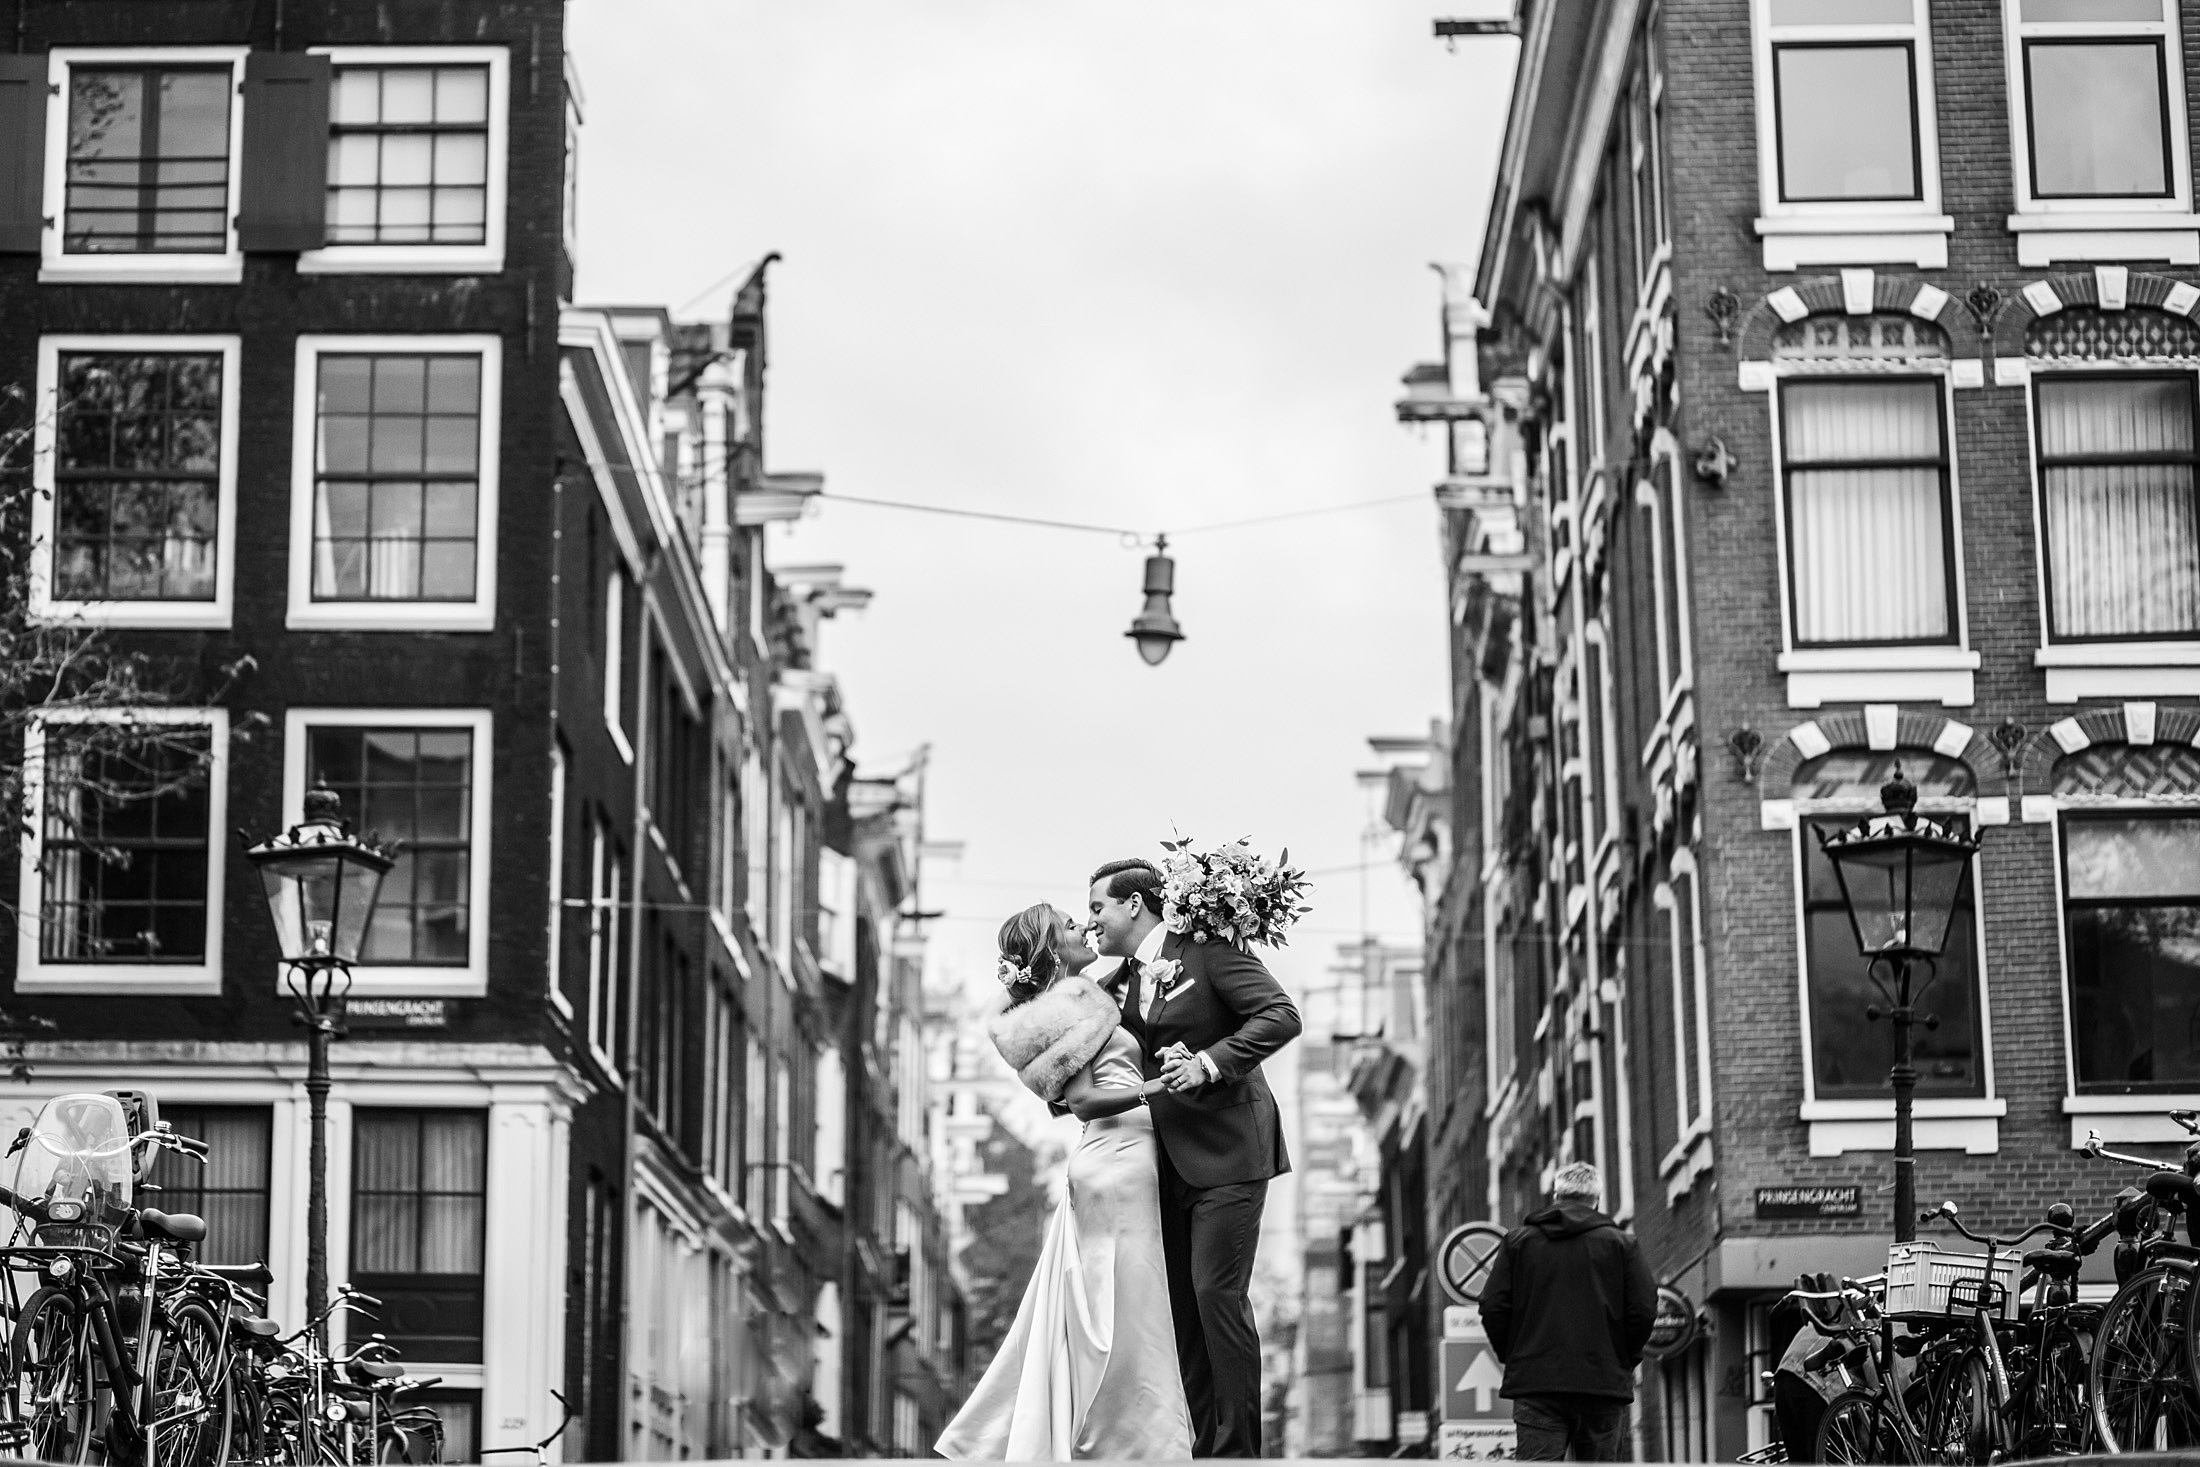 29-photoshoot-wedding-amsterdam